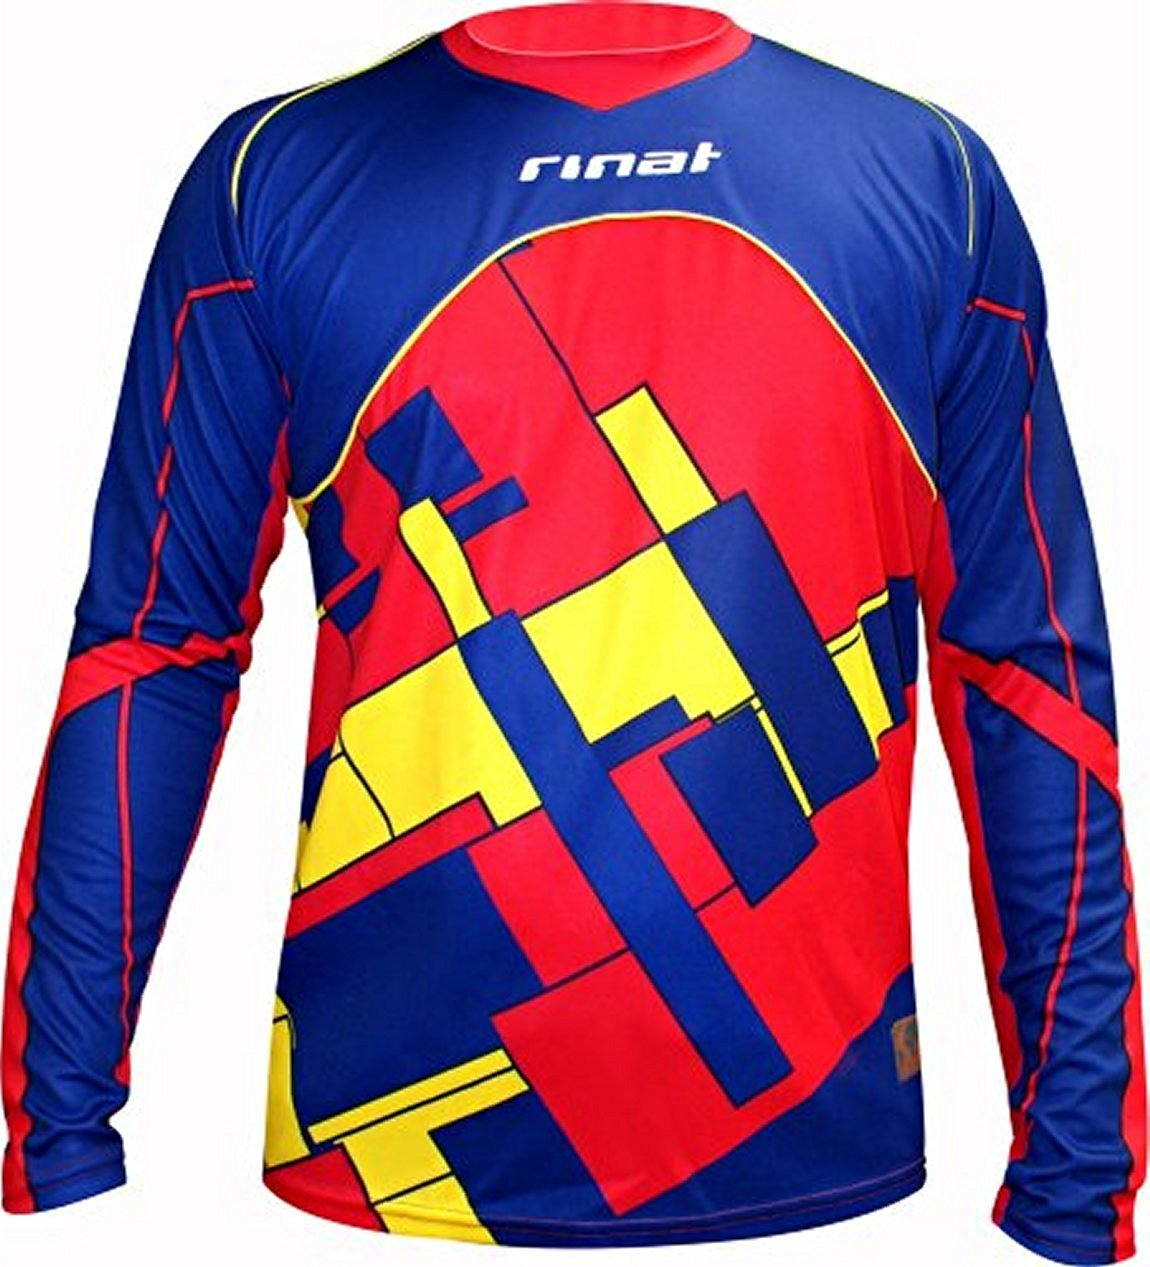 6c54dd64819 Get Quotations · Rinat Rubicon Soccer Goalkeeper Jersey - Purple - Adult XL